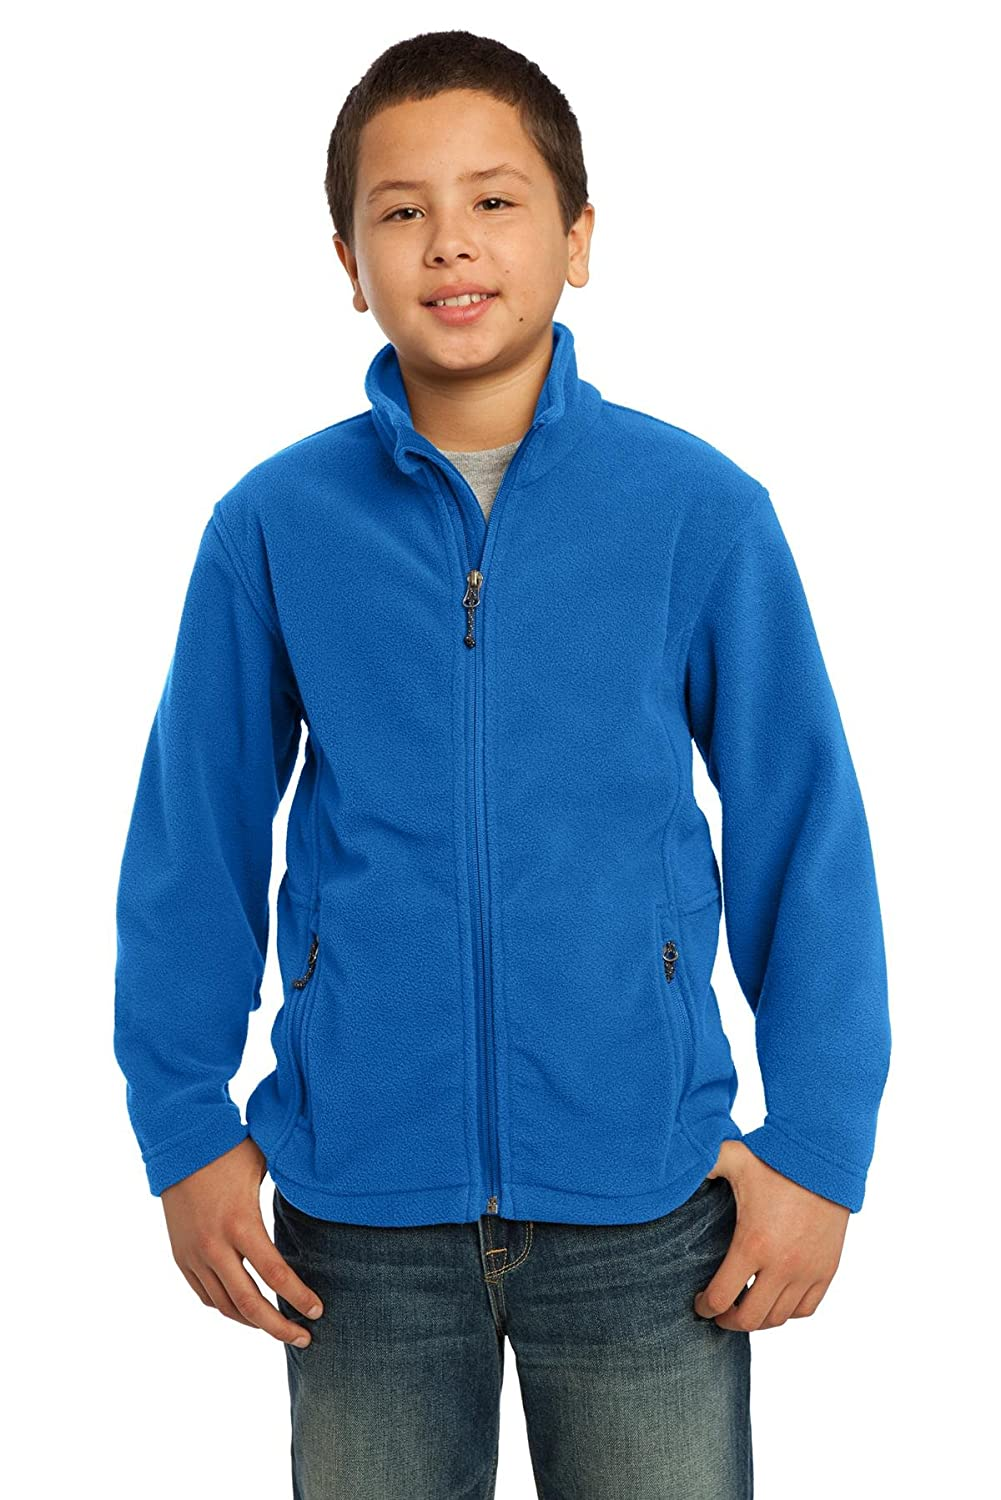 Port Authority Boys Value Fleece Jacket